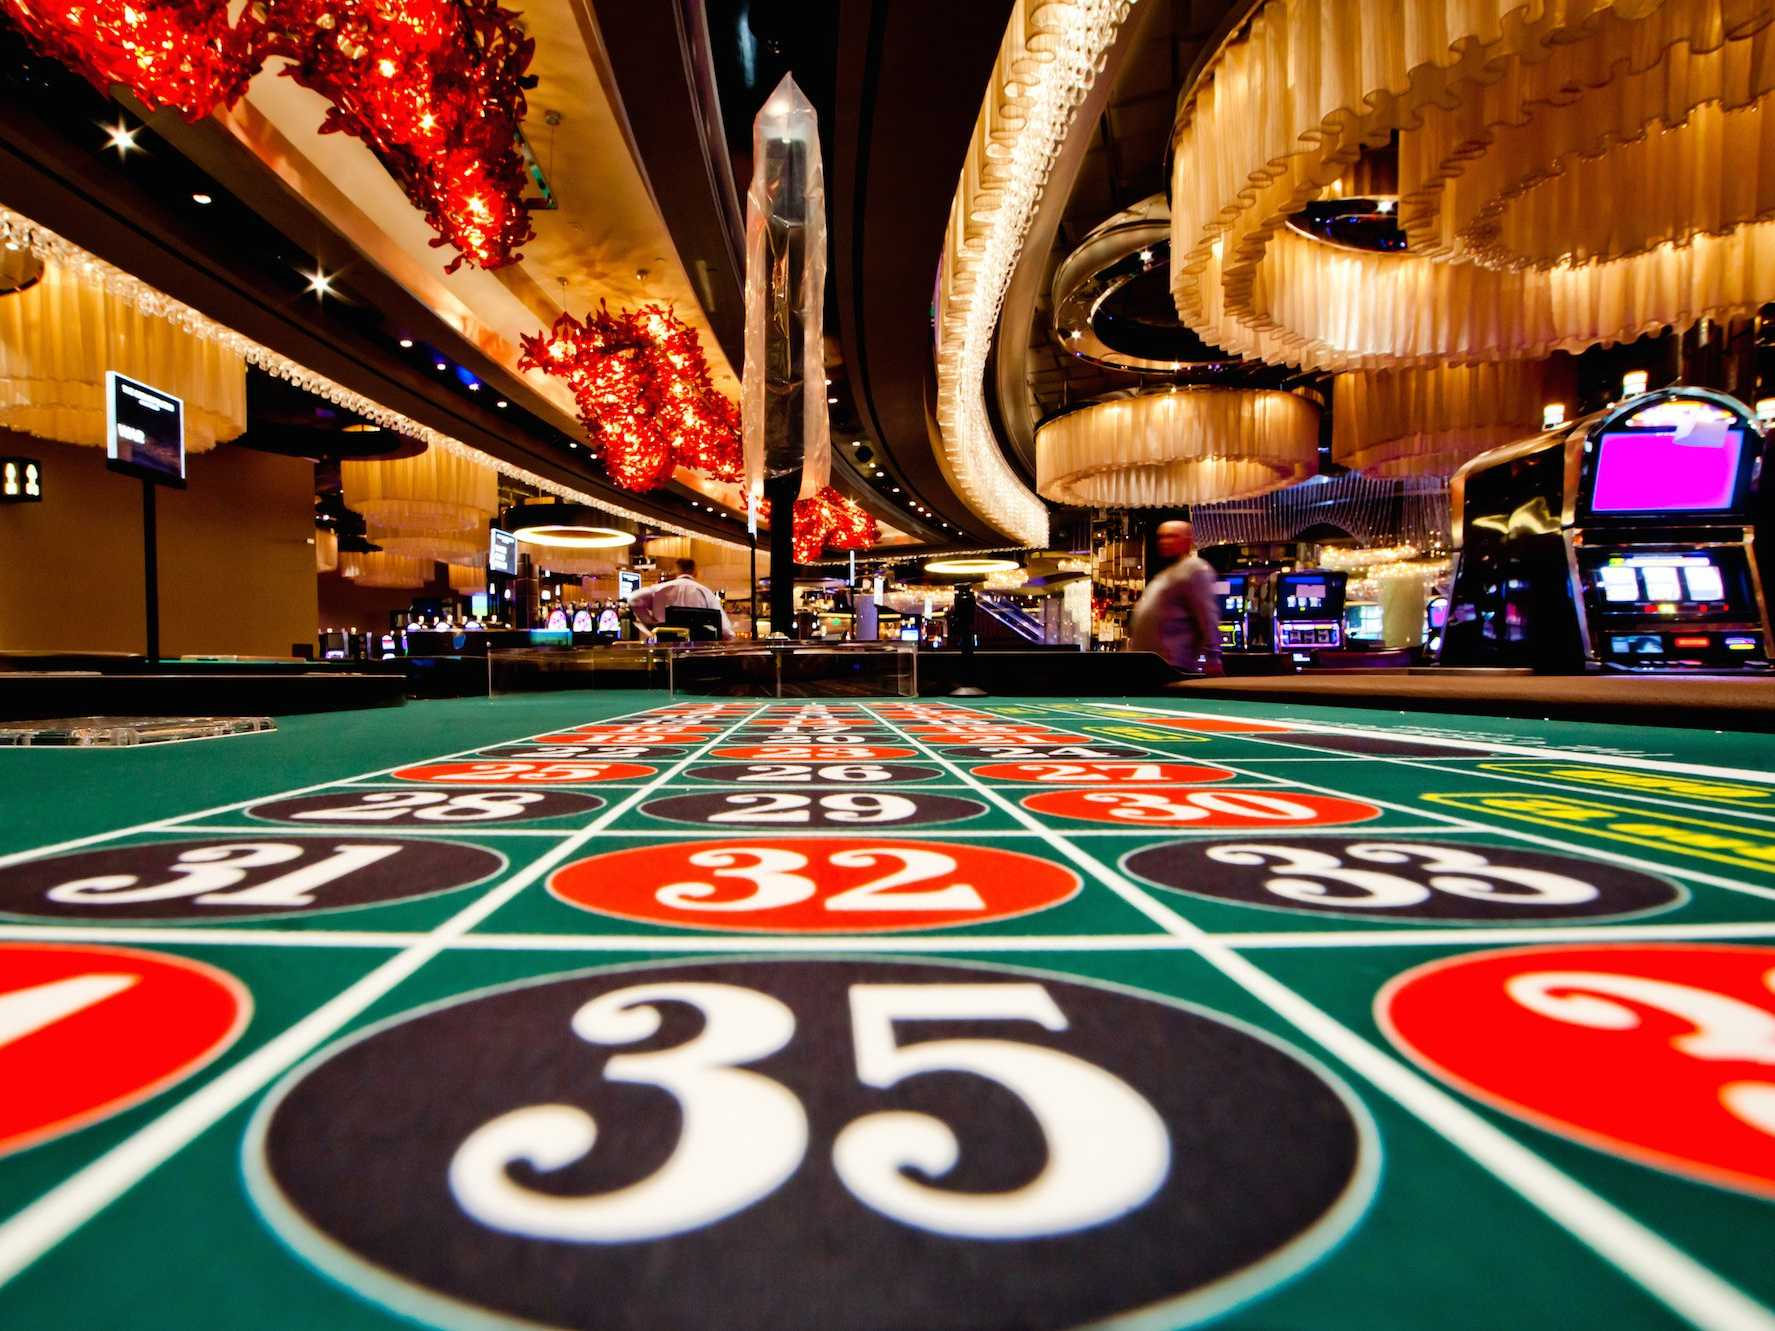 Macau Casino Stocks: How To Make At Least 30% From Bad News